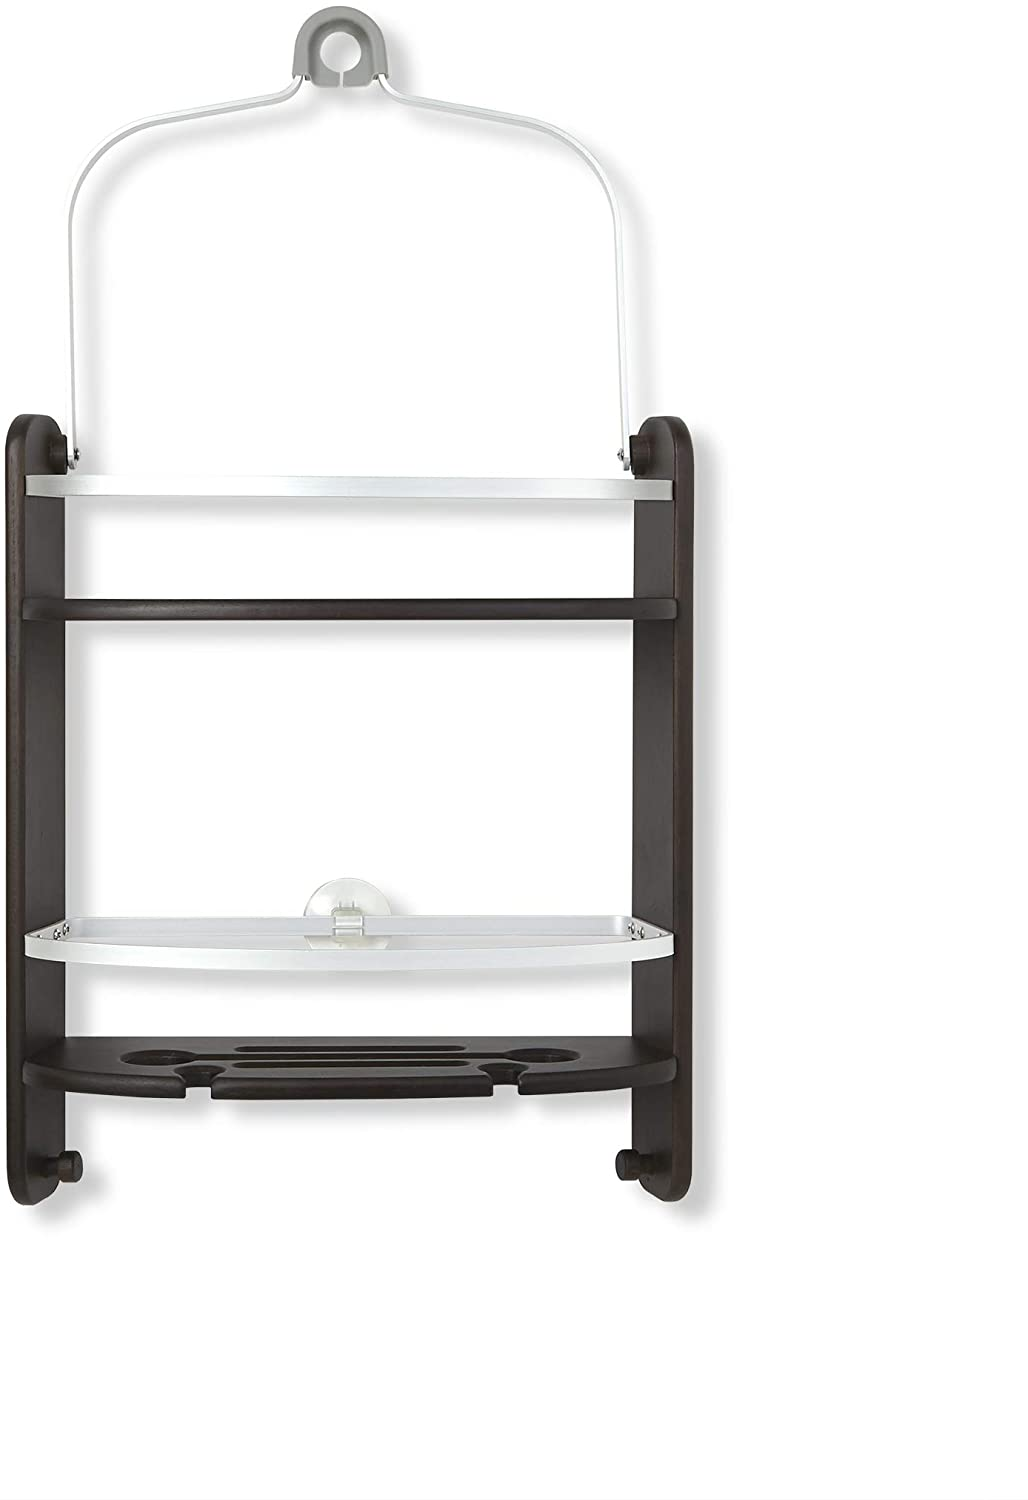 Umbra Aquala Shower Caddy Large, Self-Draining, Integrated Razor Holders, Hooks-Bamboo and Metal, Rust Proof Rails with Two-Tier Storage Shelves and Suction Cup, Walnut